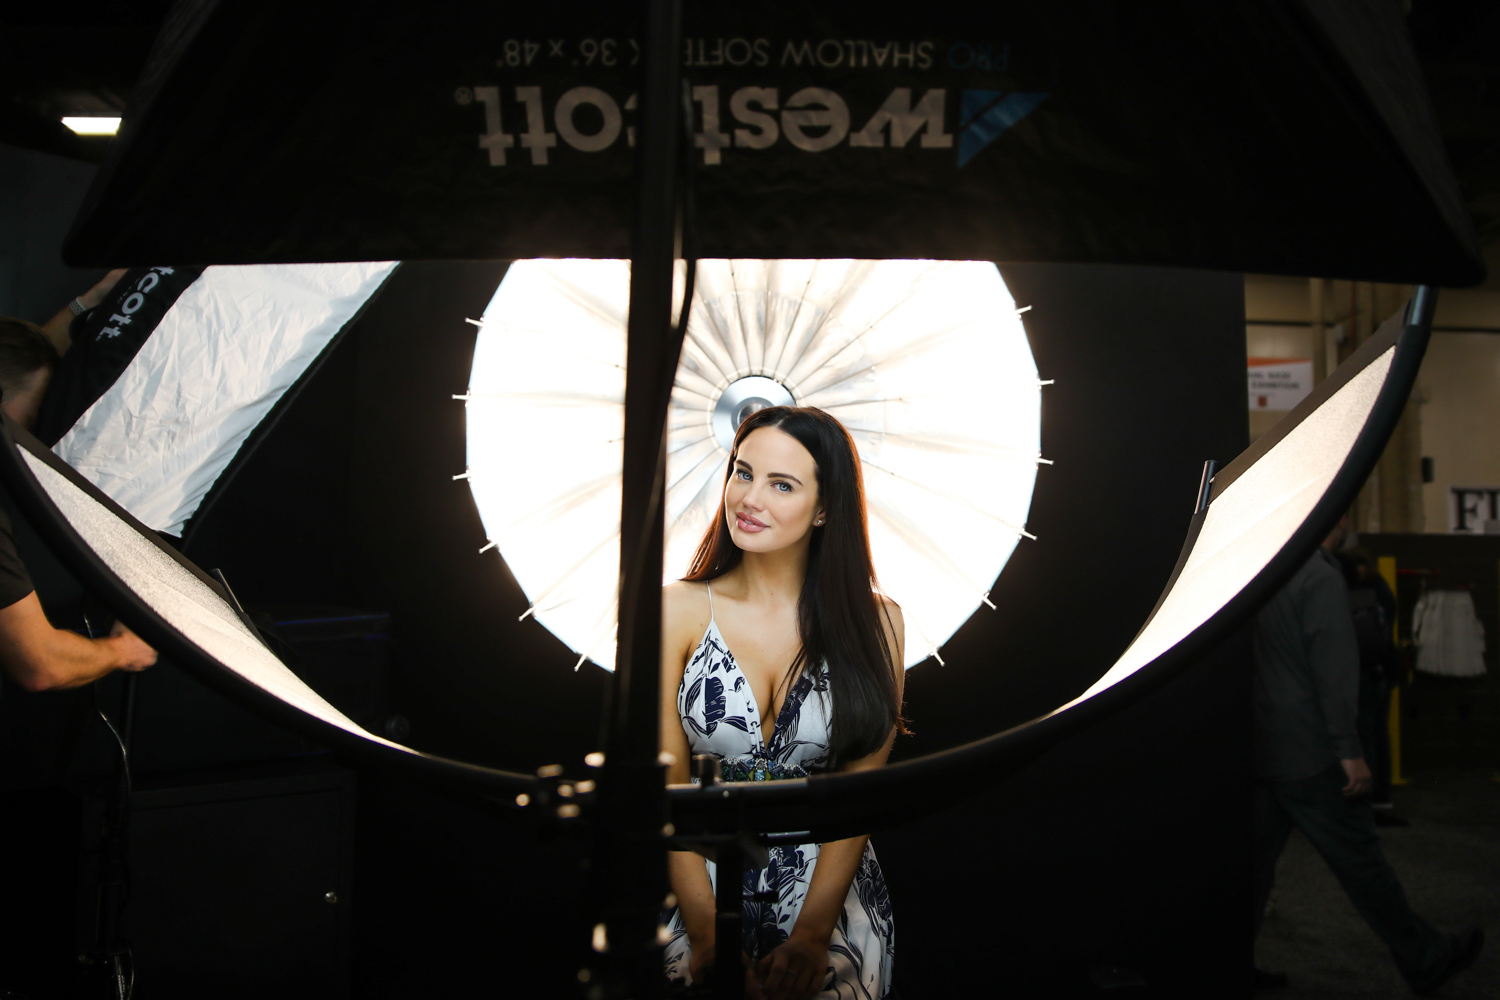 Review of the Westcott Eyelighter for Headshots and Portraits - studio setup showing it in use